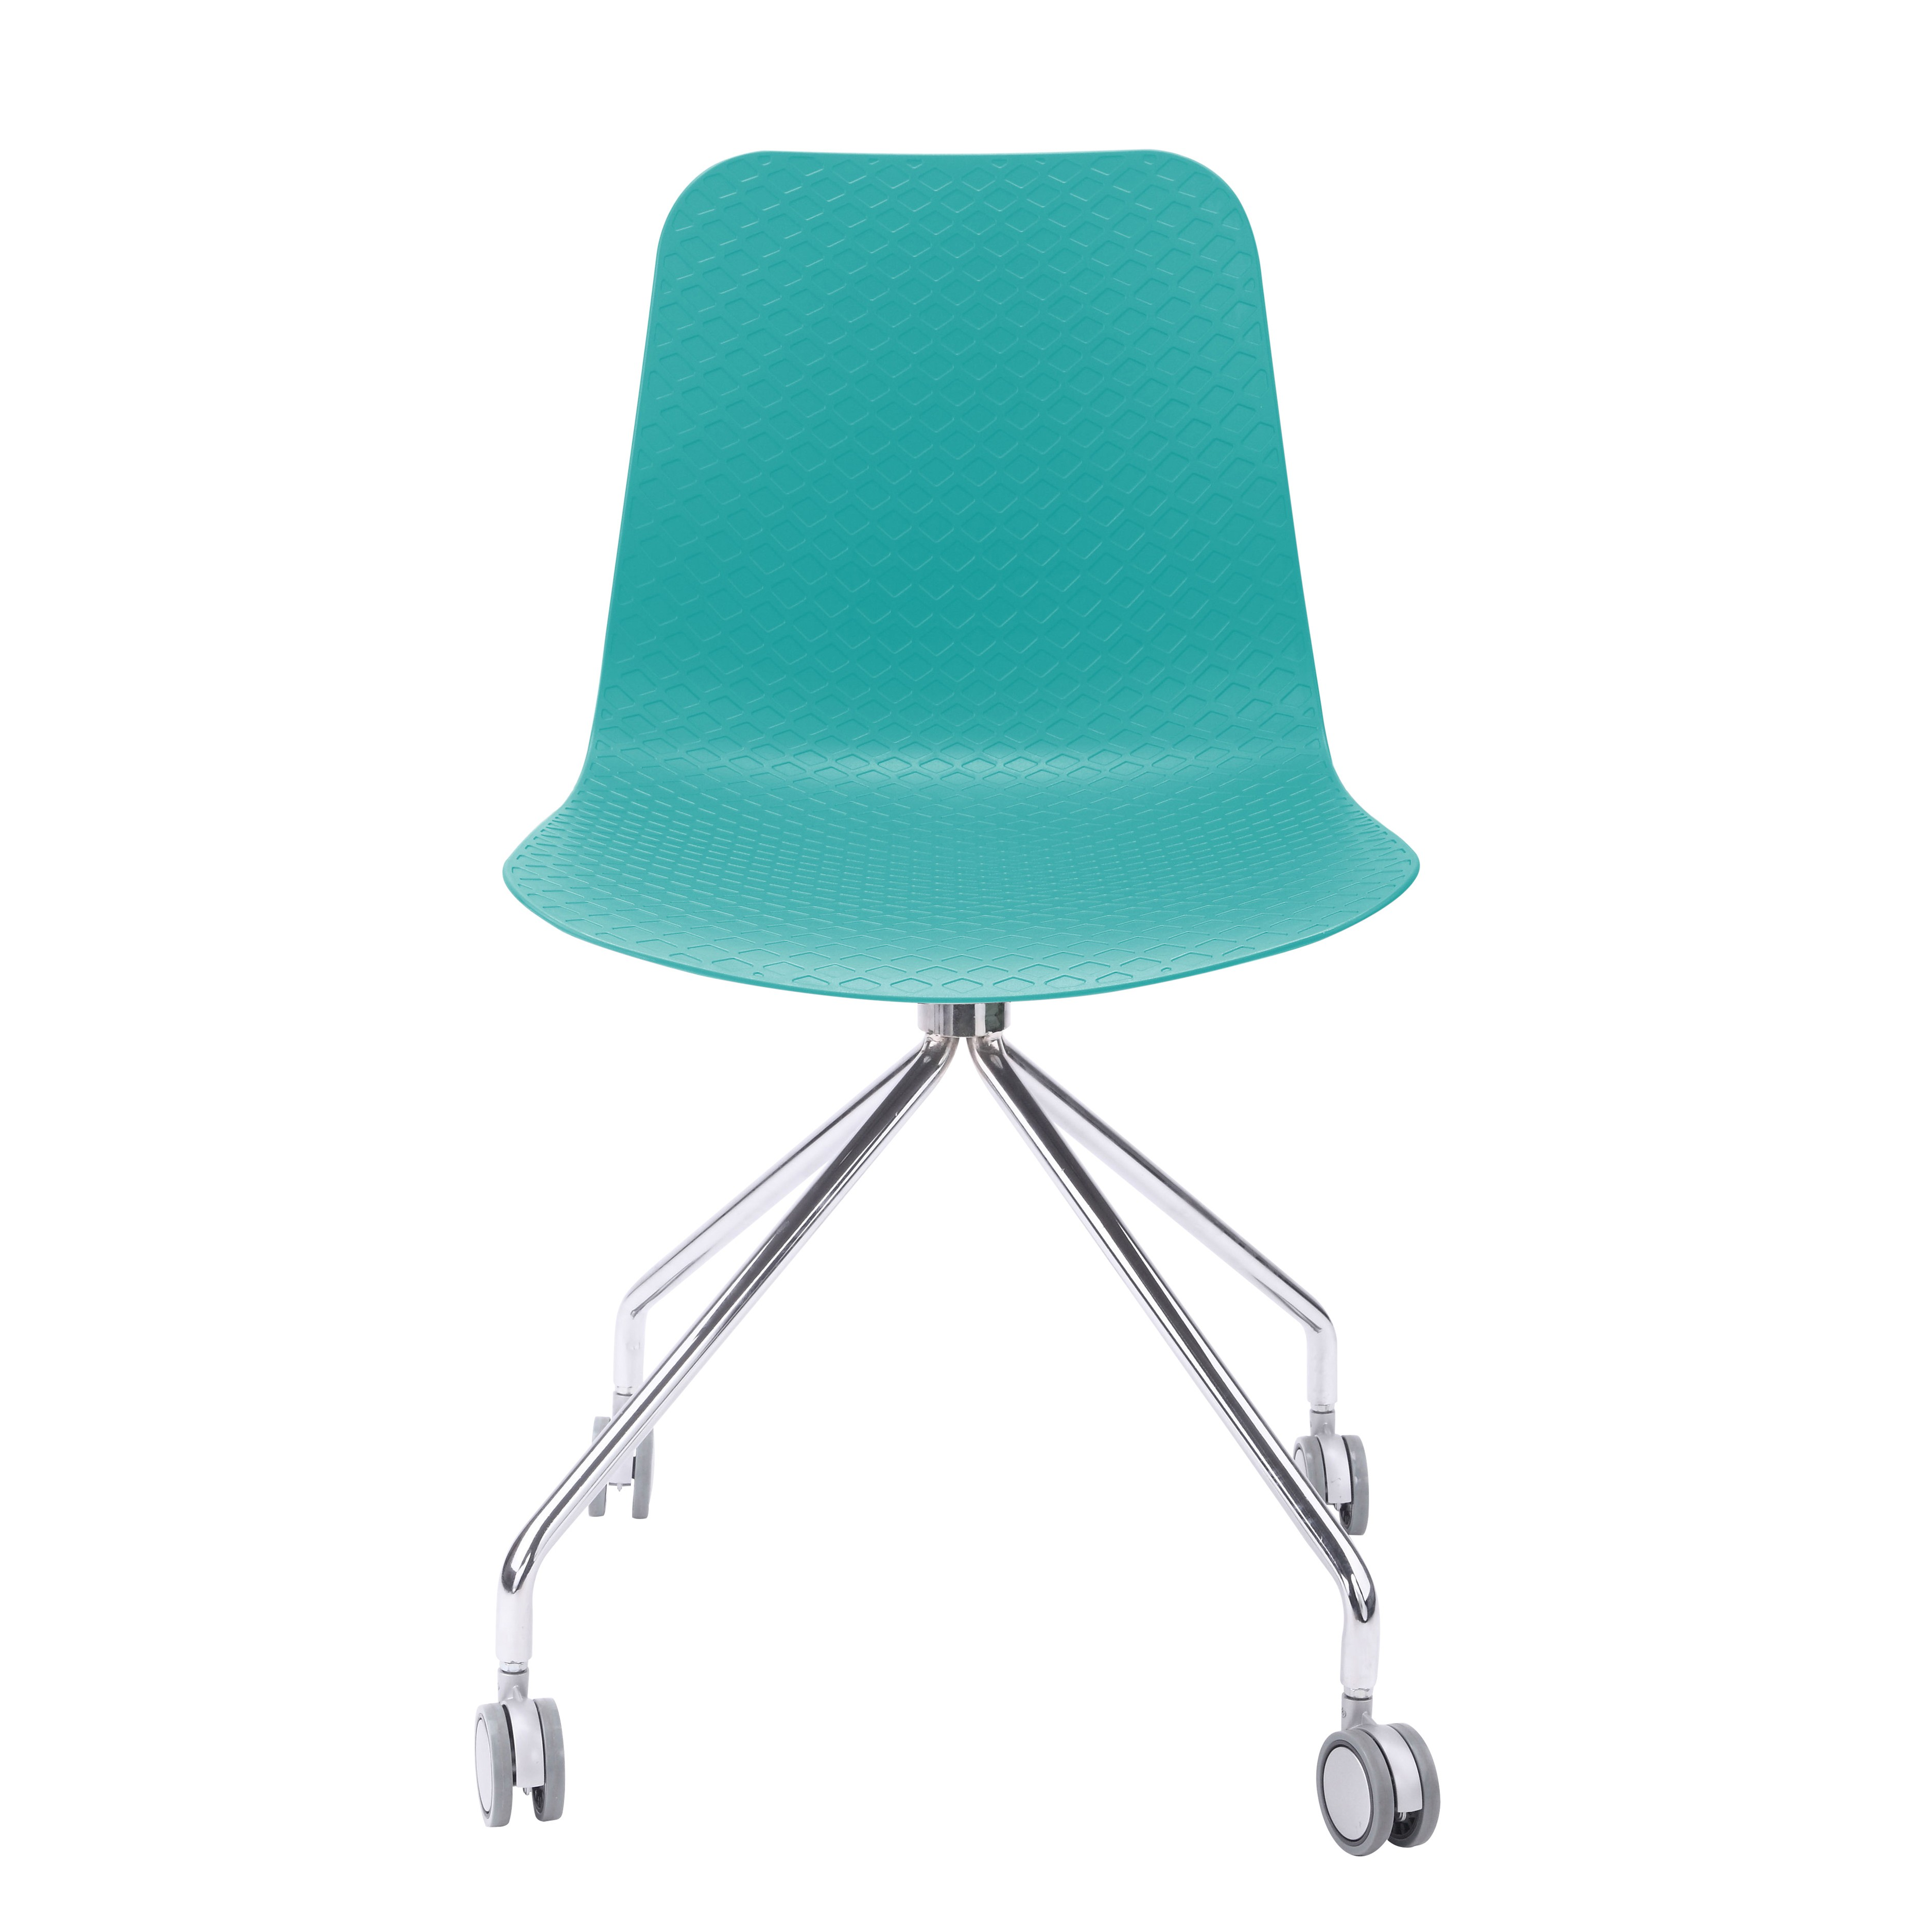 Turquoise Desk Chair Hebe Series Turquoise Office Chair Molded Plastic Designer